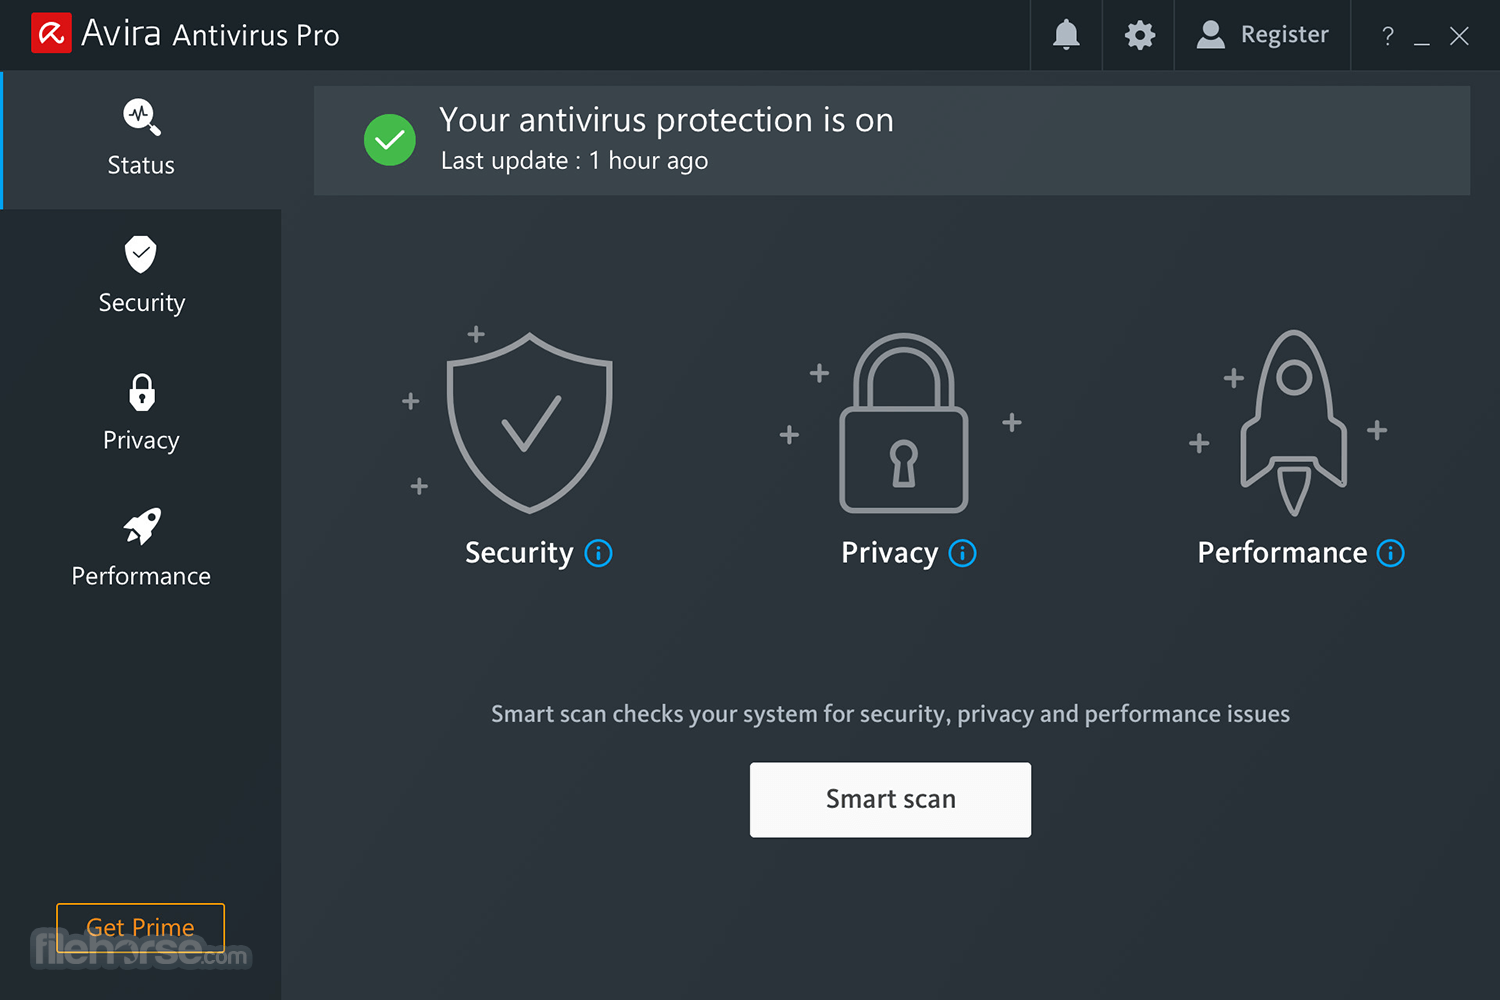 Avira Antivirus Pro 15.0.34.17 Screenshot 1